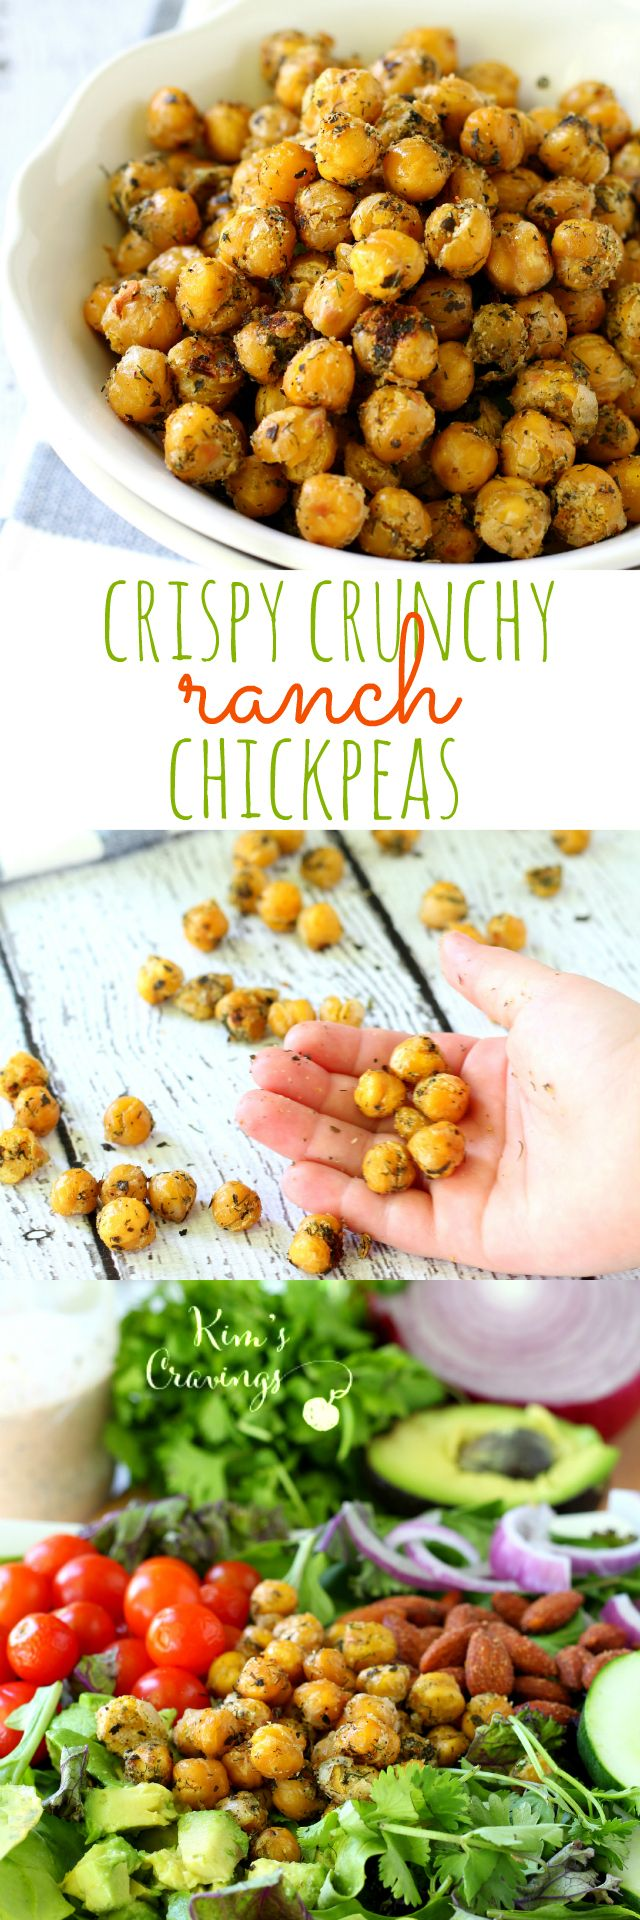 You might as well double the recipe because you can't stop once you start chowing down on these crispy crunchy ranch chickpeas!